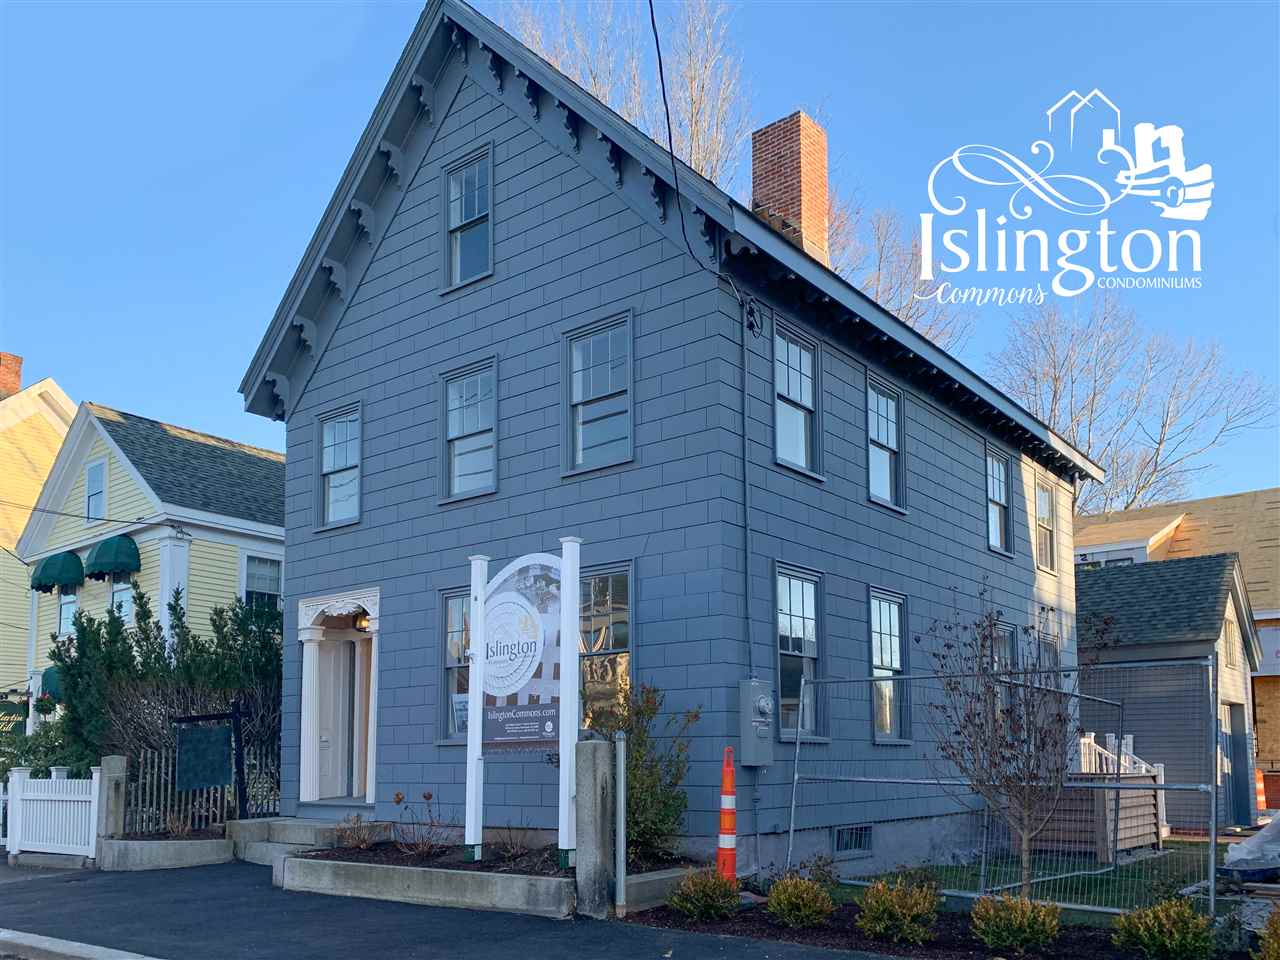 Photo of 410 Islington Street Portsmouth NH 03801-4208